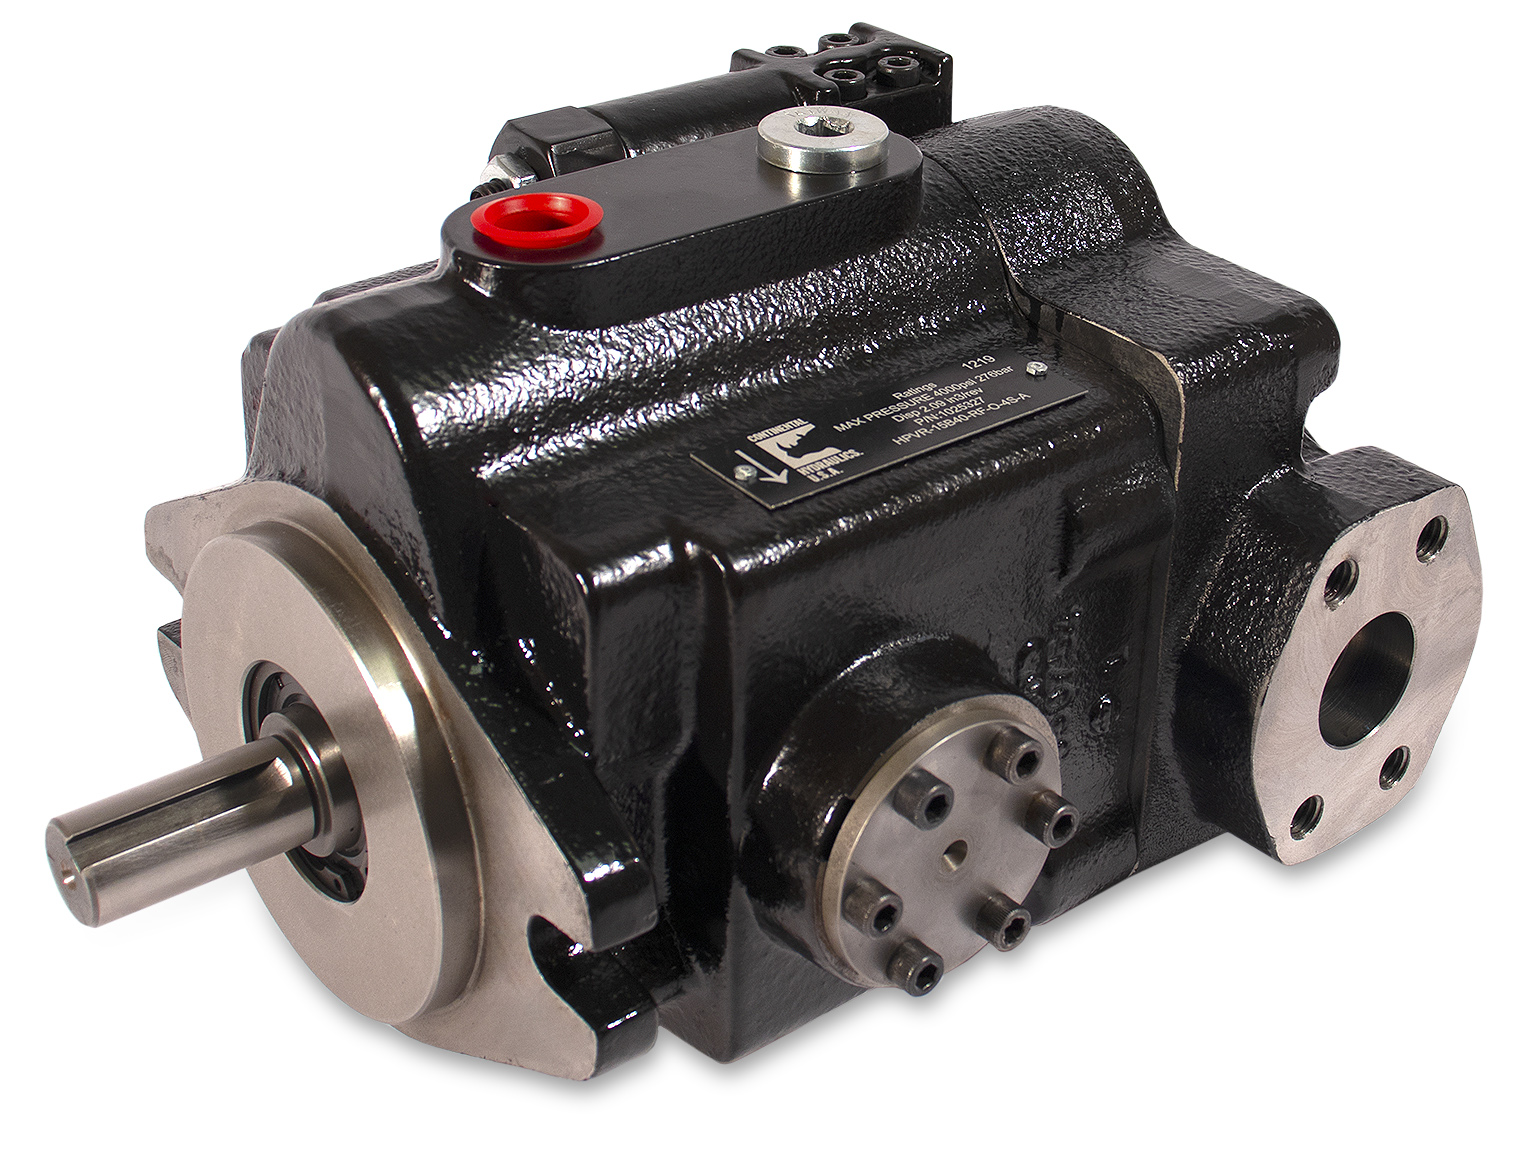 HPVR open-circuit piston pump product; white background